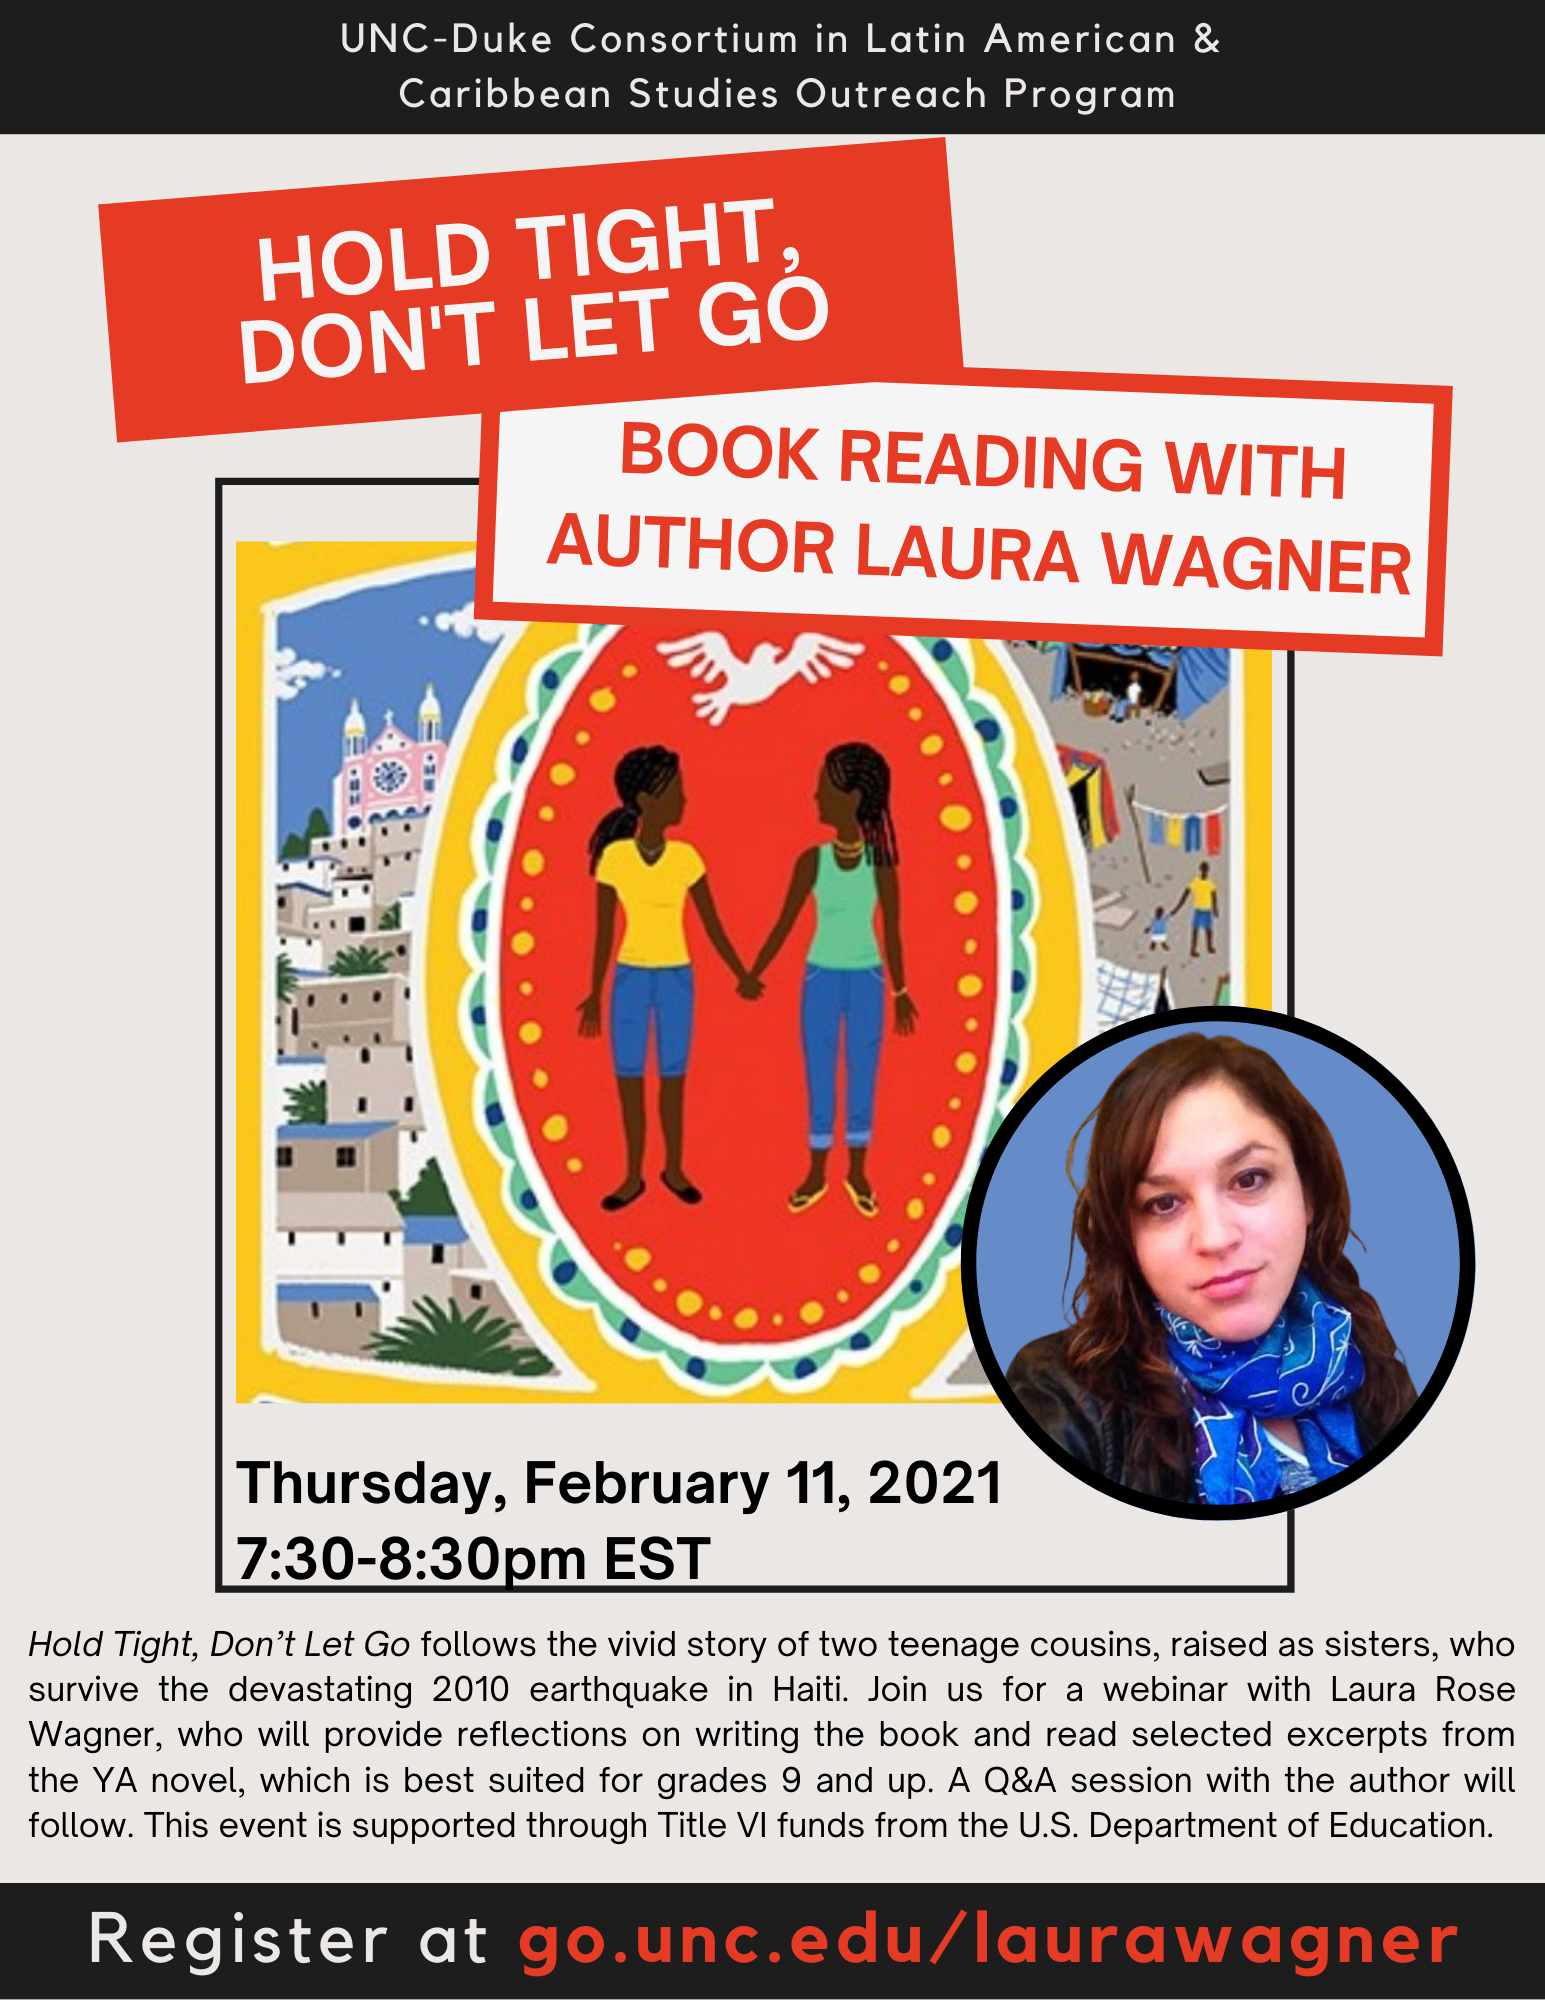 Hold Tight, Don't Let Go: Reading with Laura Wagner